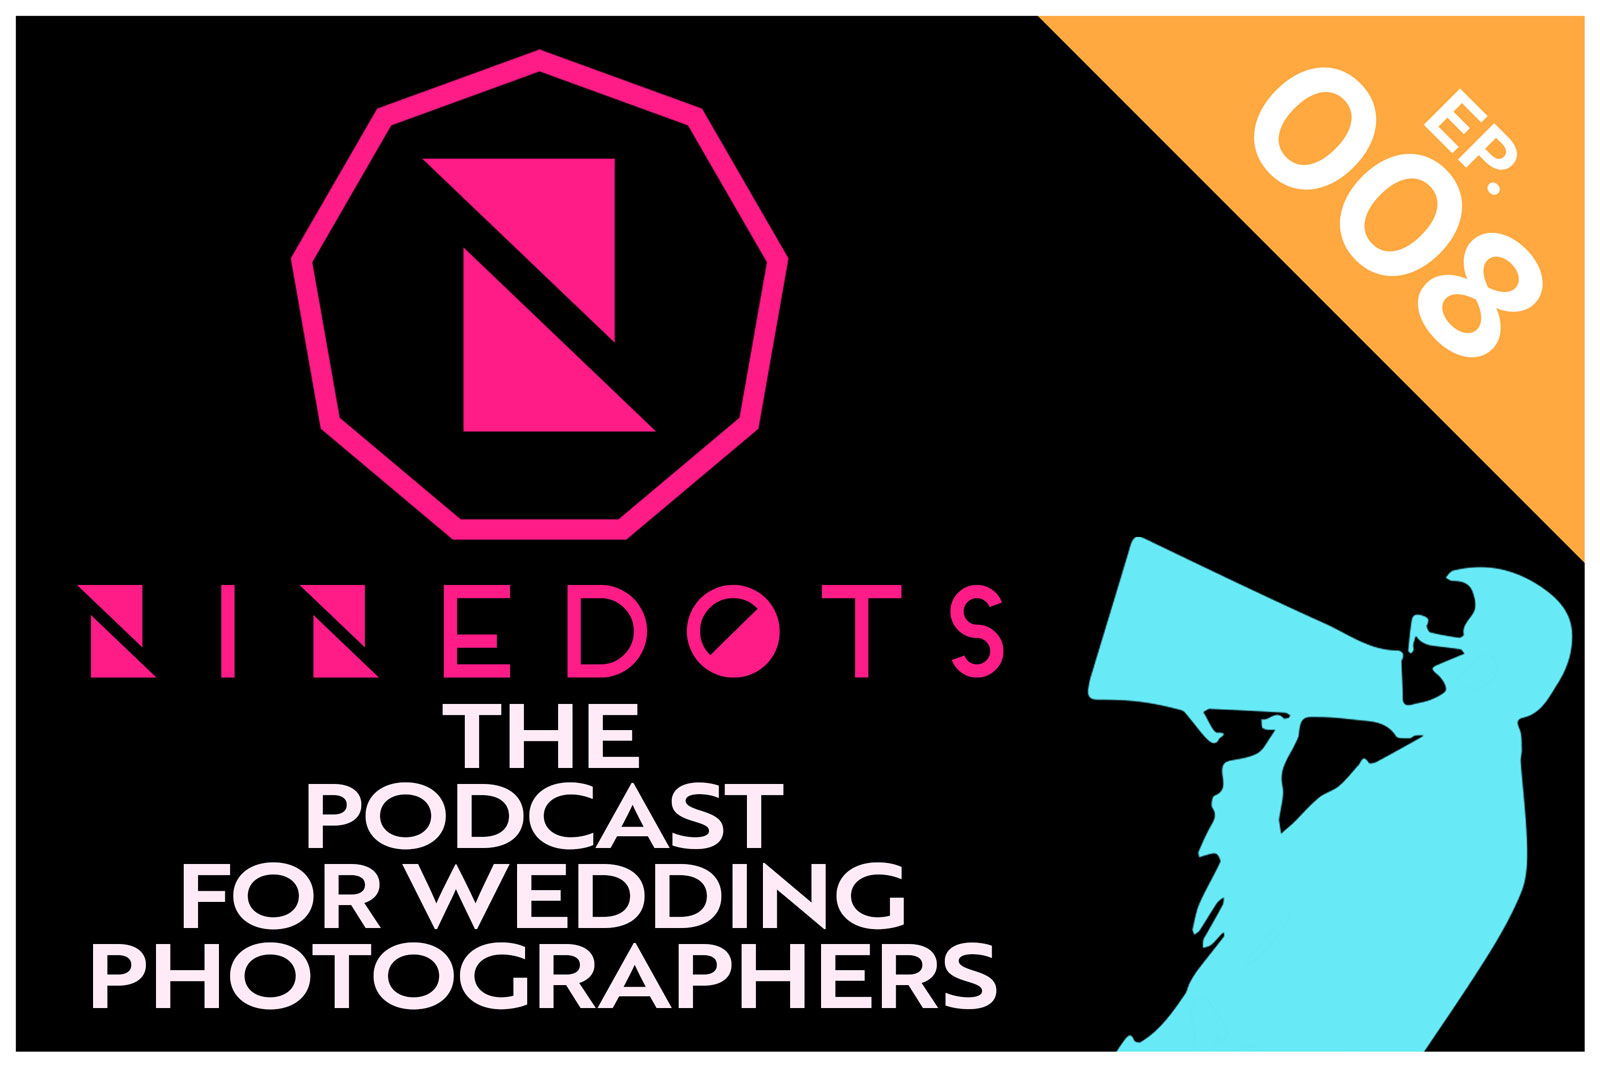 Wedding Photography Podcast Episode 8